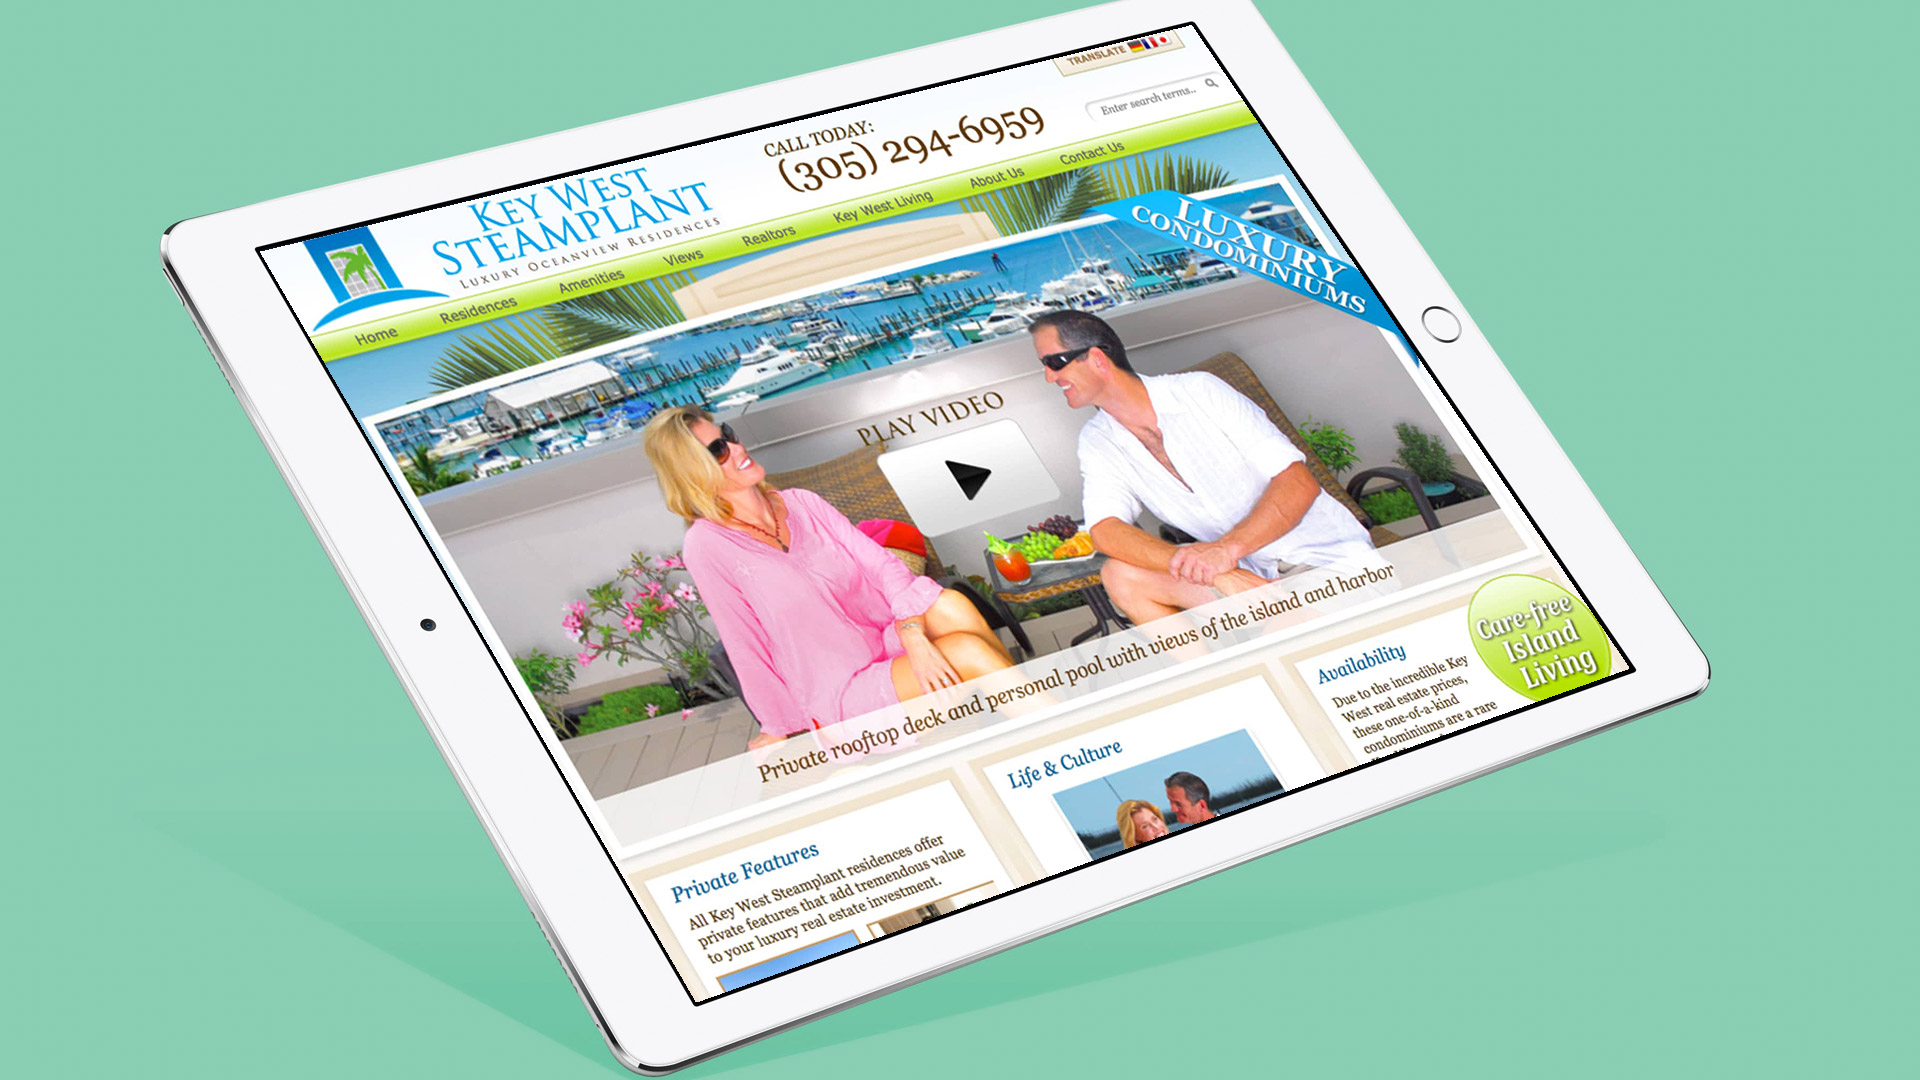 tablet showing key west steamplant web home page featuring logo and phone number at top and main picture of a couple on roof top deck with key west harbor in background